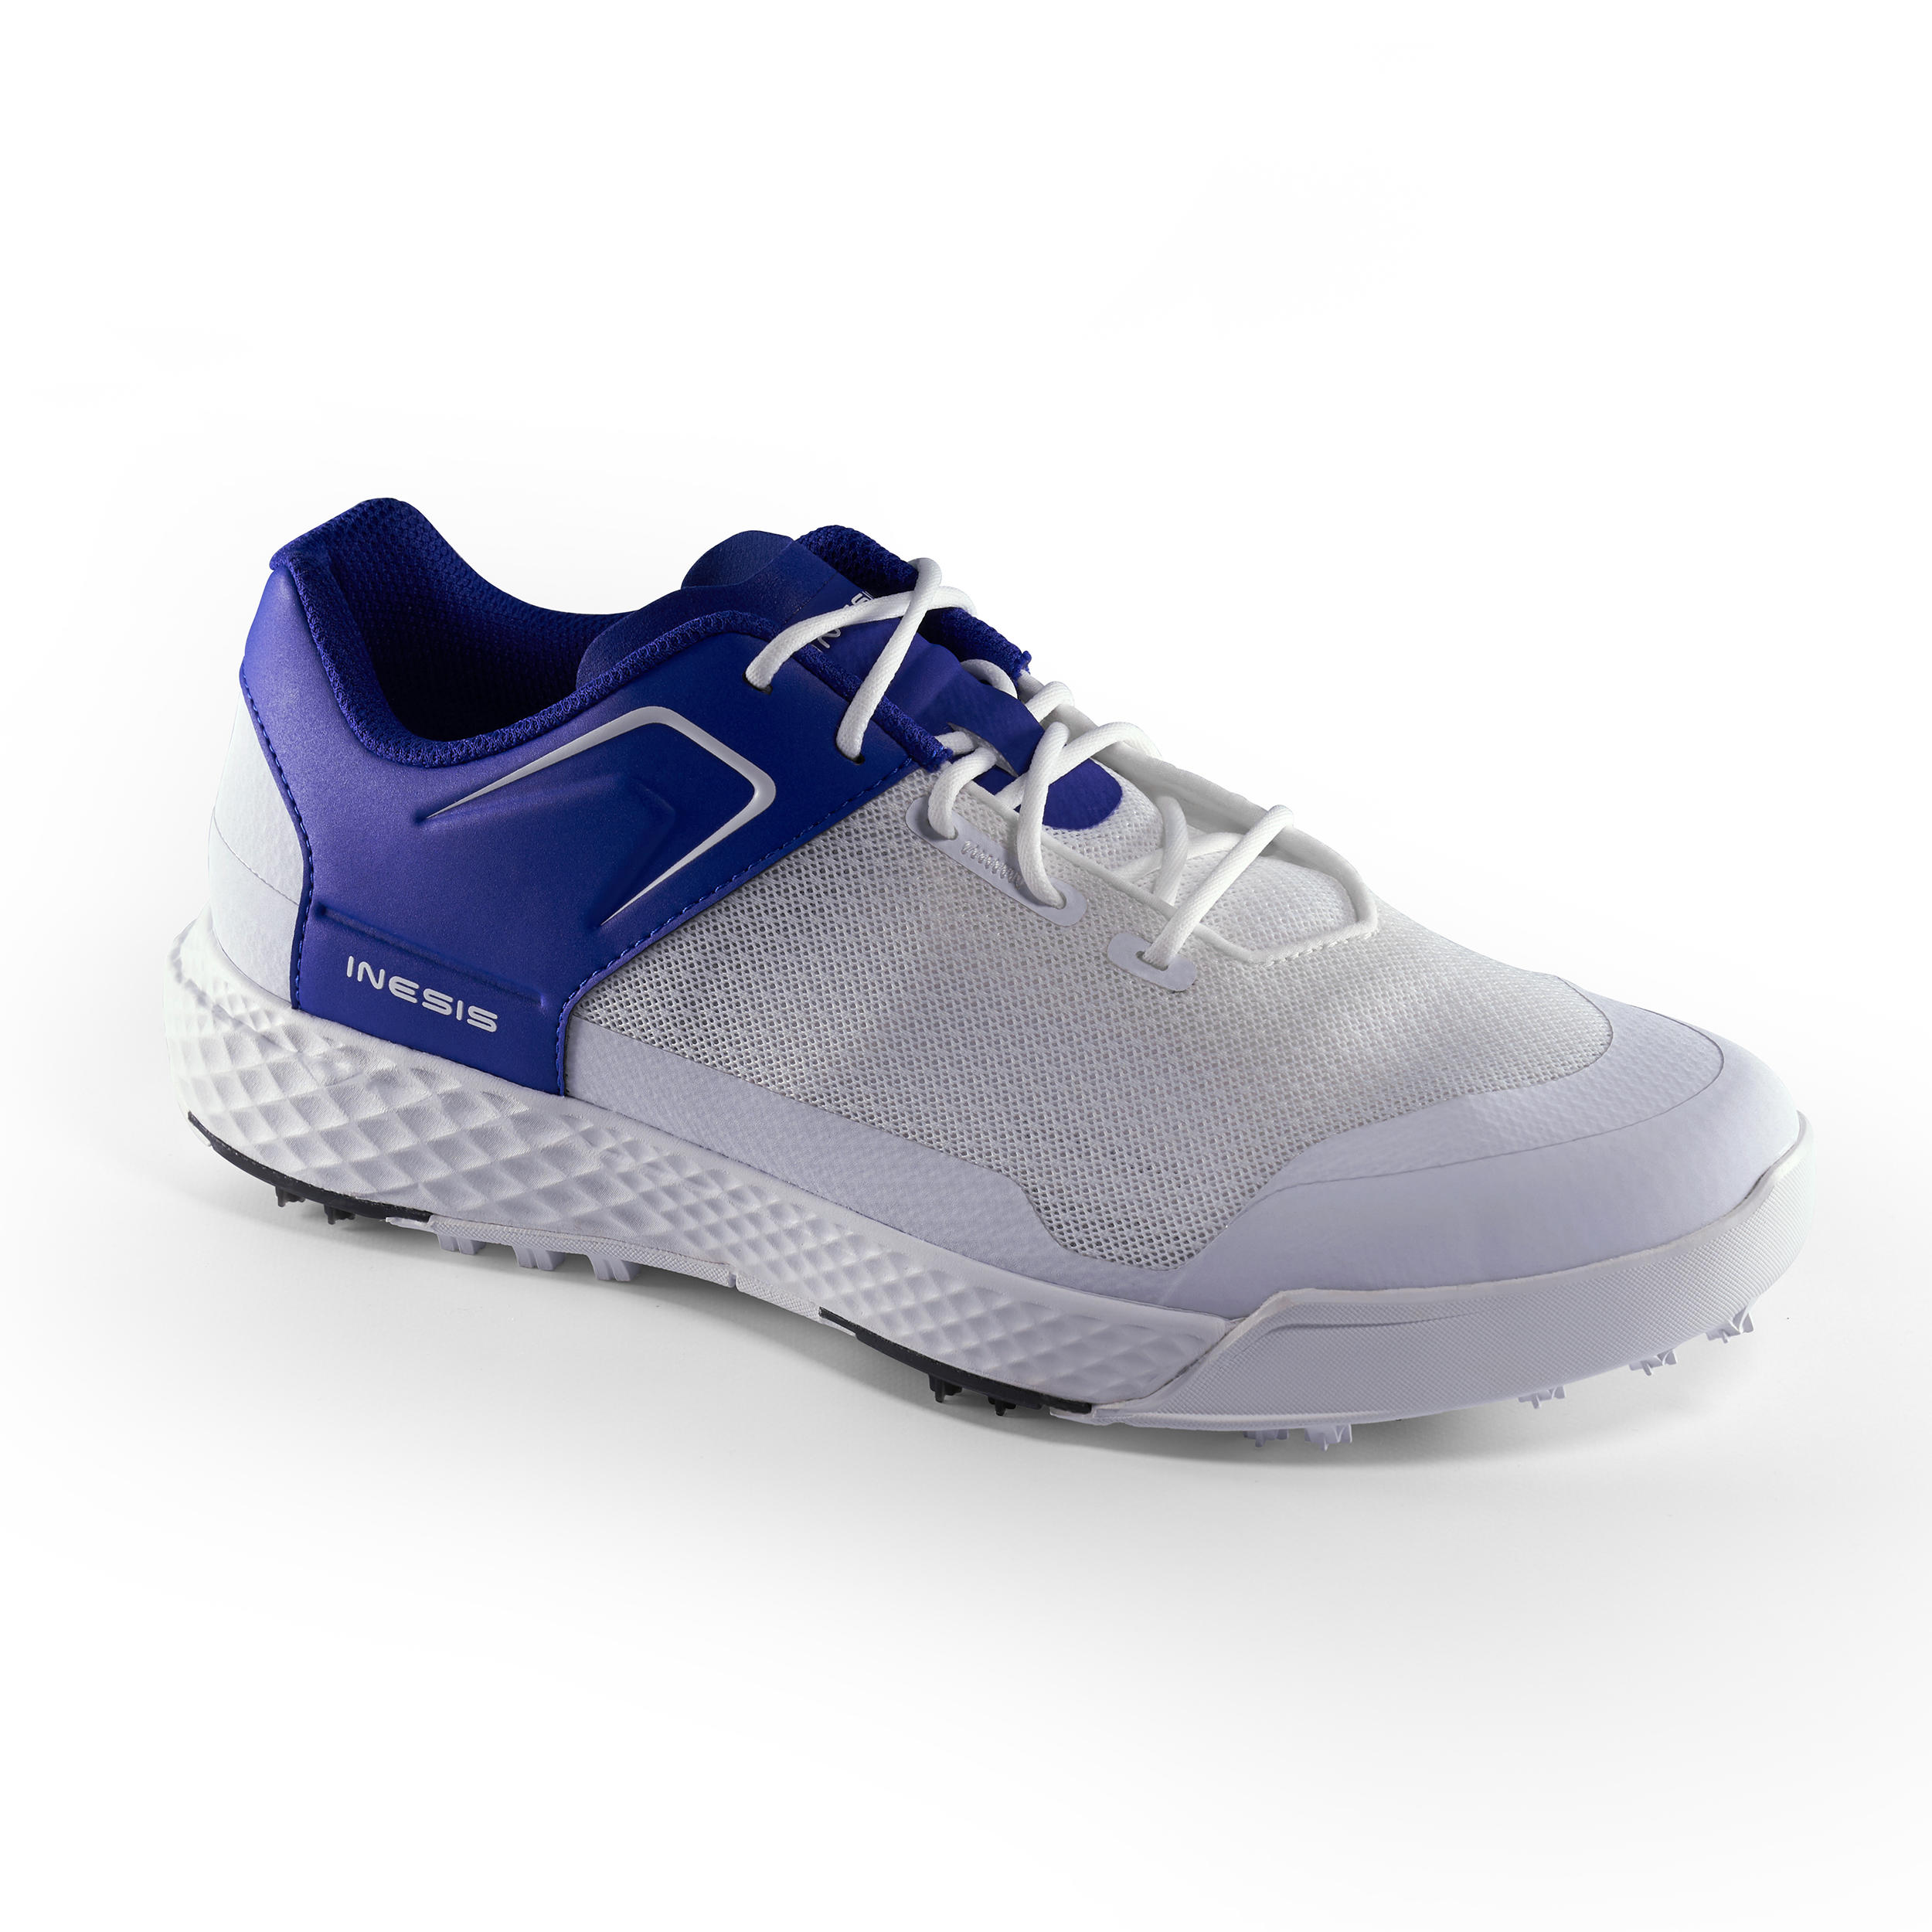 CHAUSSURES GOLF HOMME GRIP DRY BLANCHES ET BLEUES - Inesis